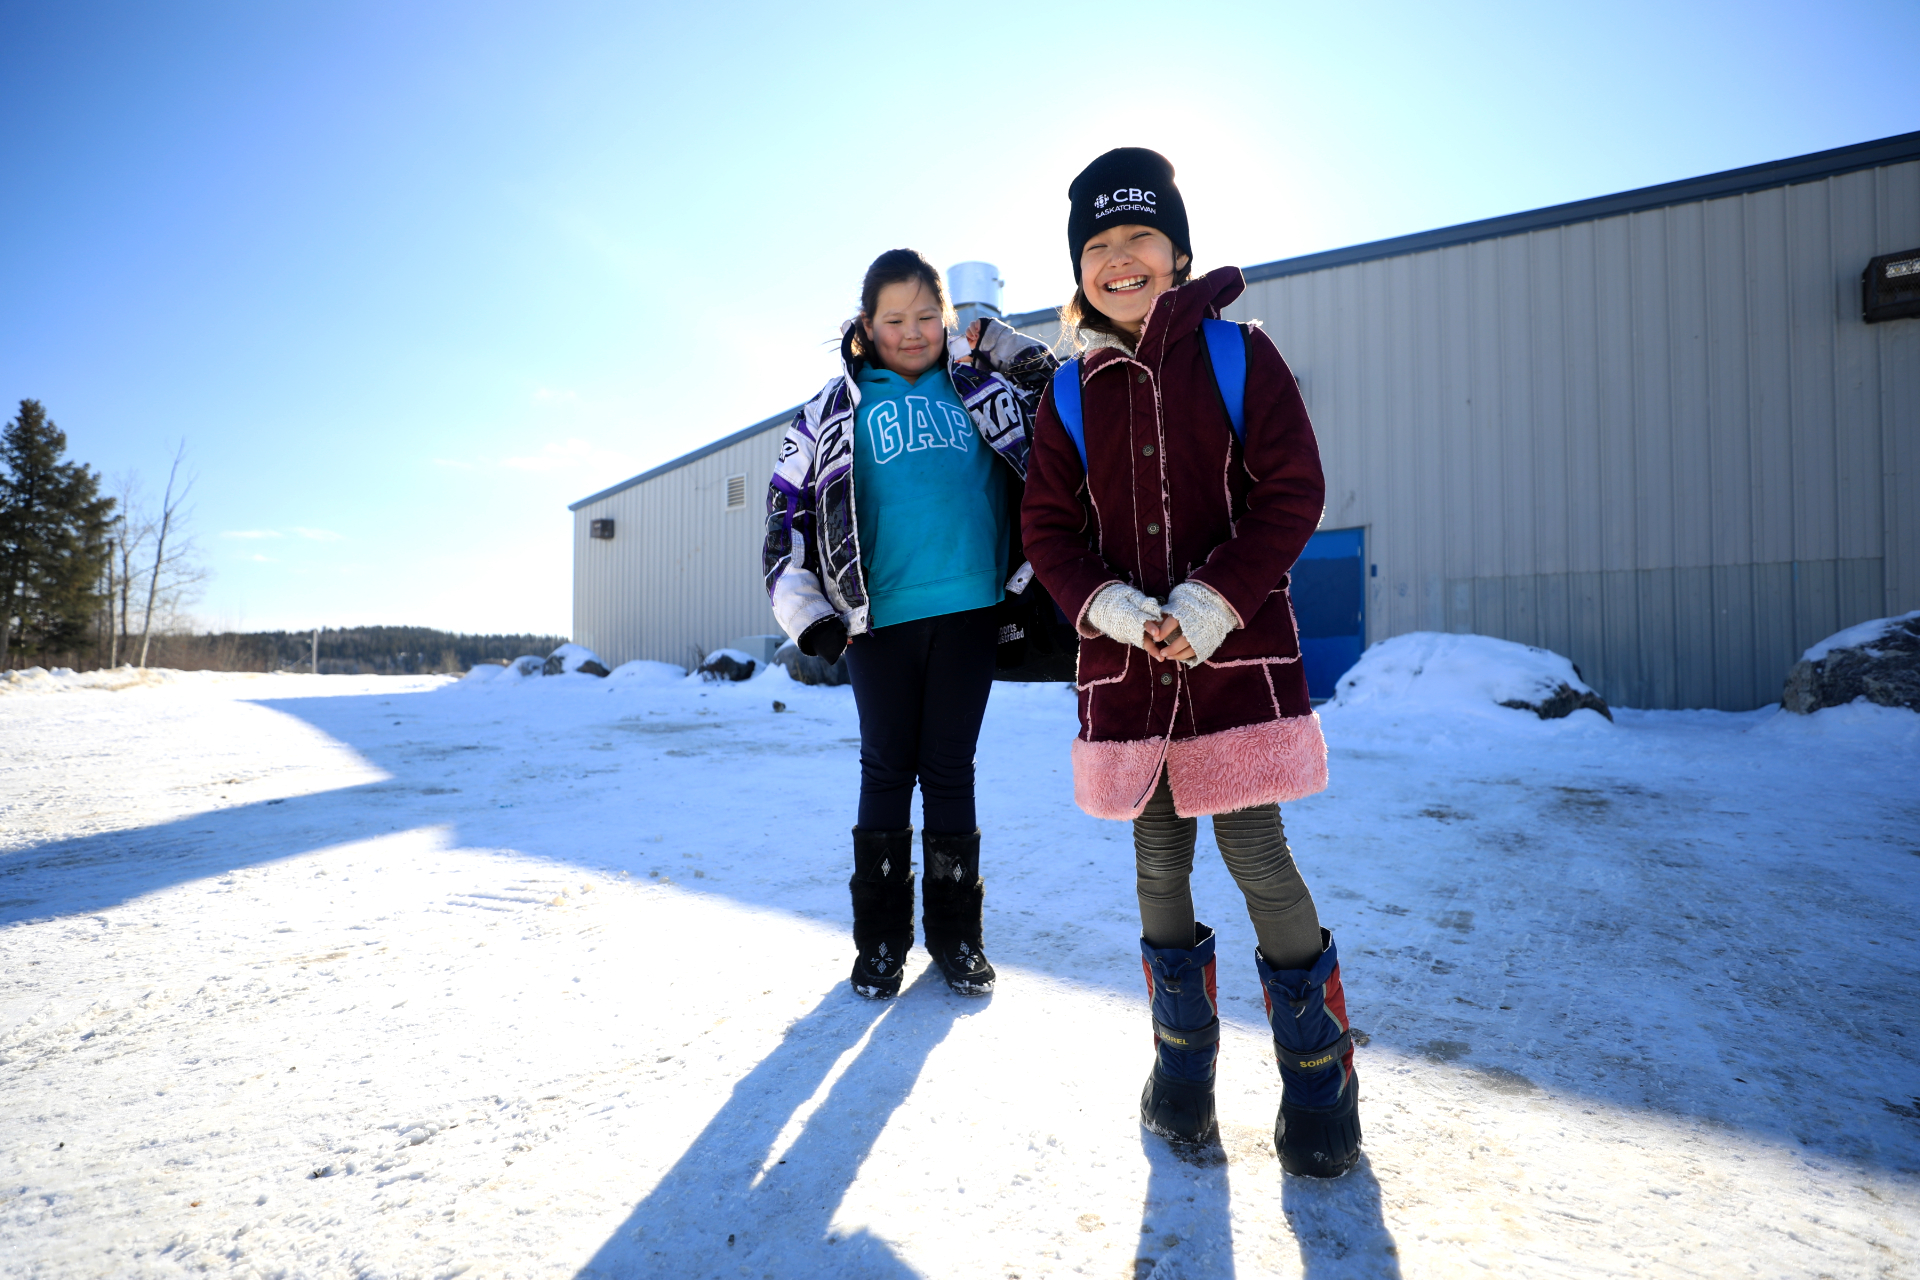 Two girls chat about the DSLR camera while waiting to go into the ice skating rink in Stanley Mission in March, 2020. (Heidi Atter/CBC)